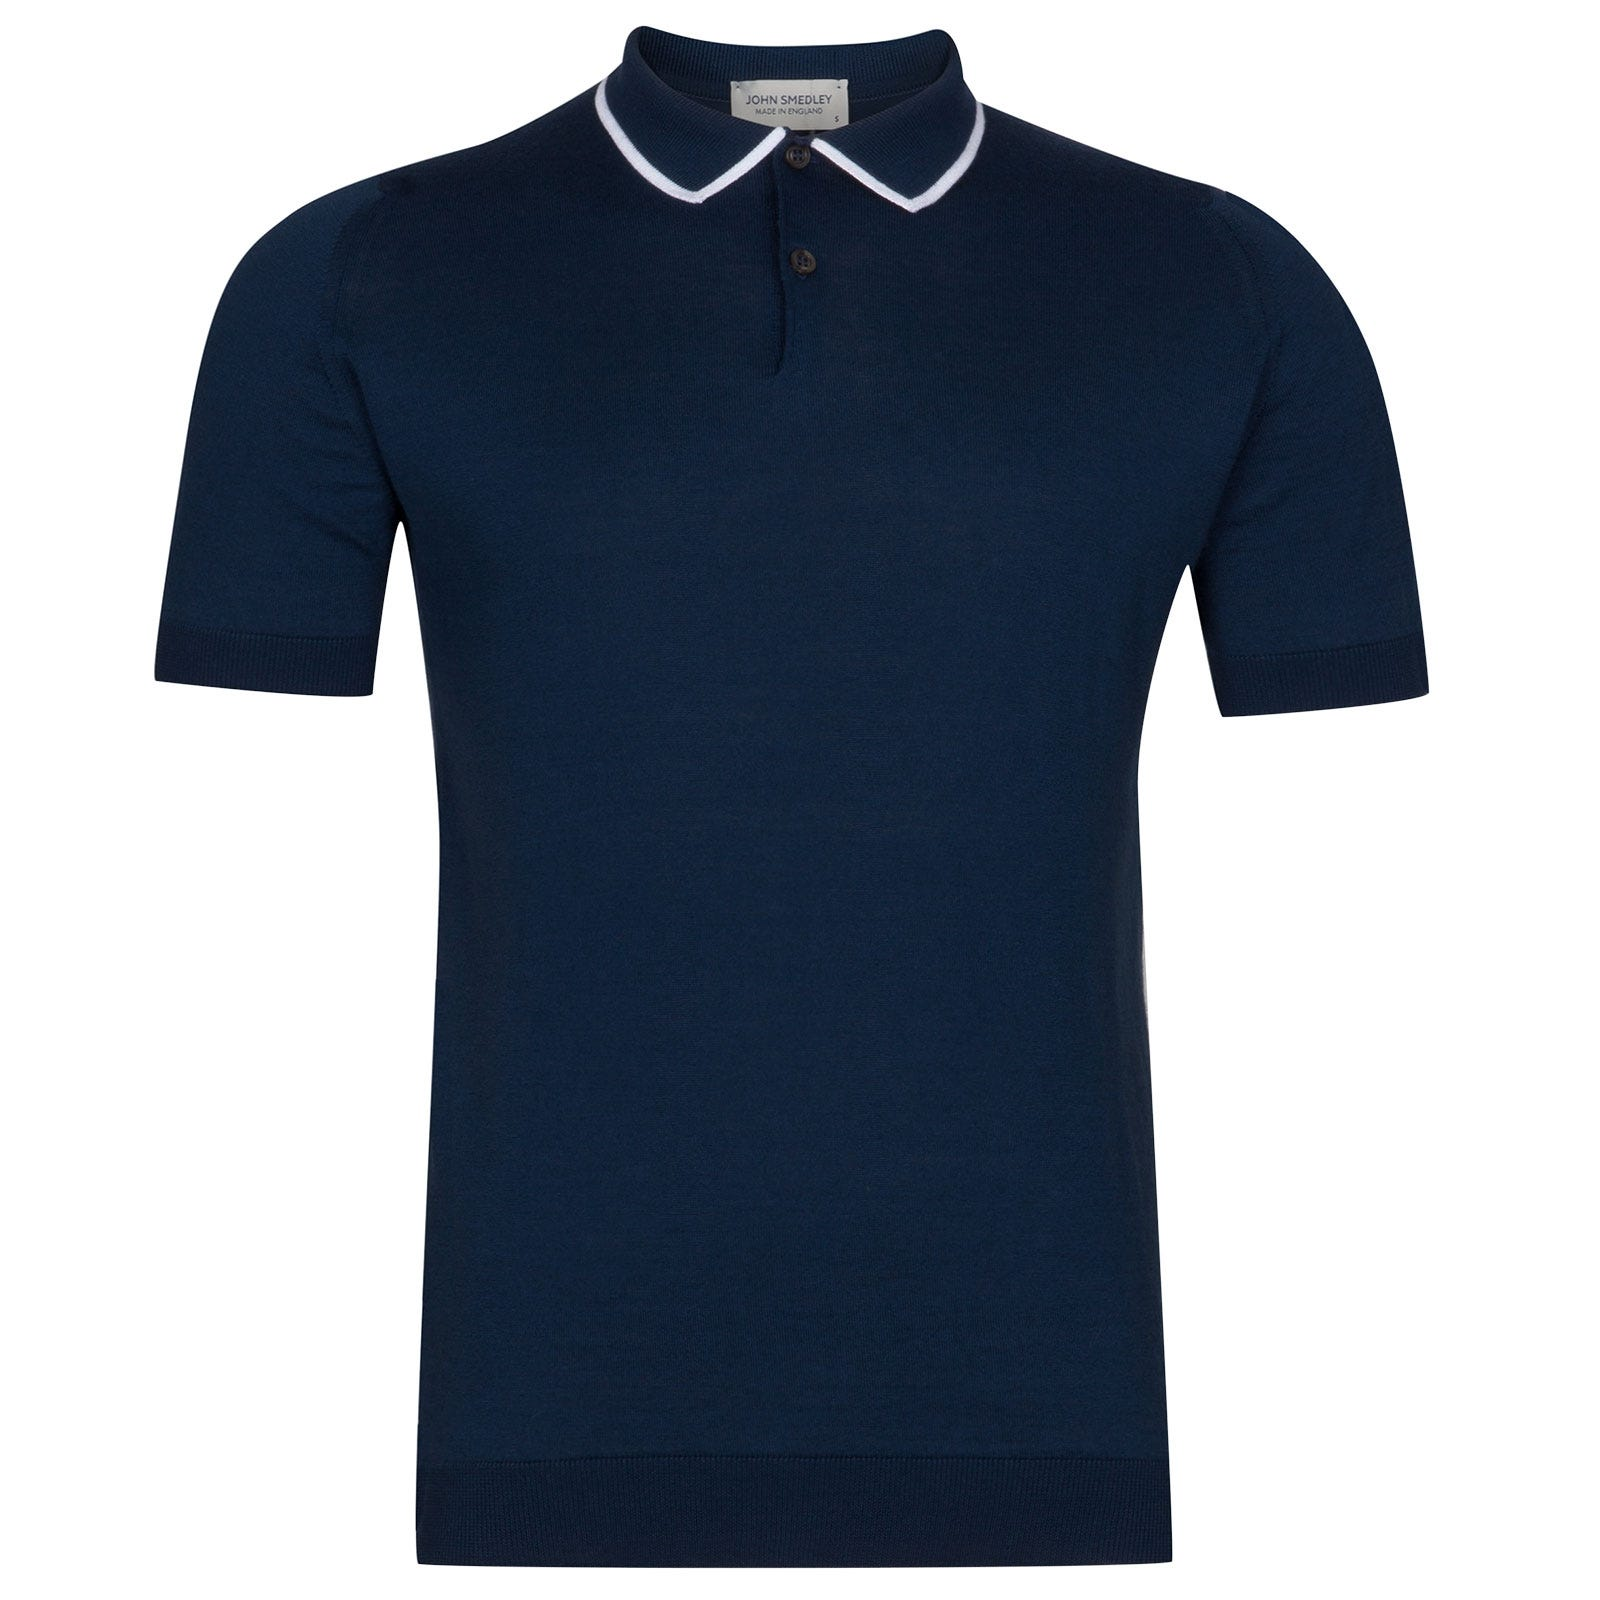 John Smedley Klerk Sea Island Cotton Shirt in Indigo-M